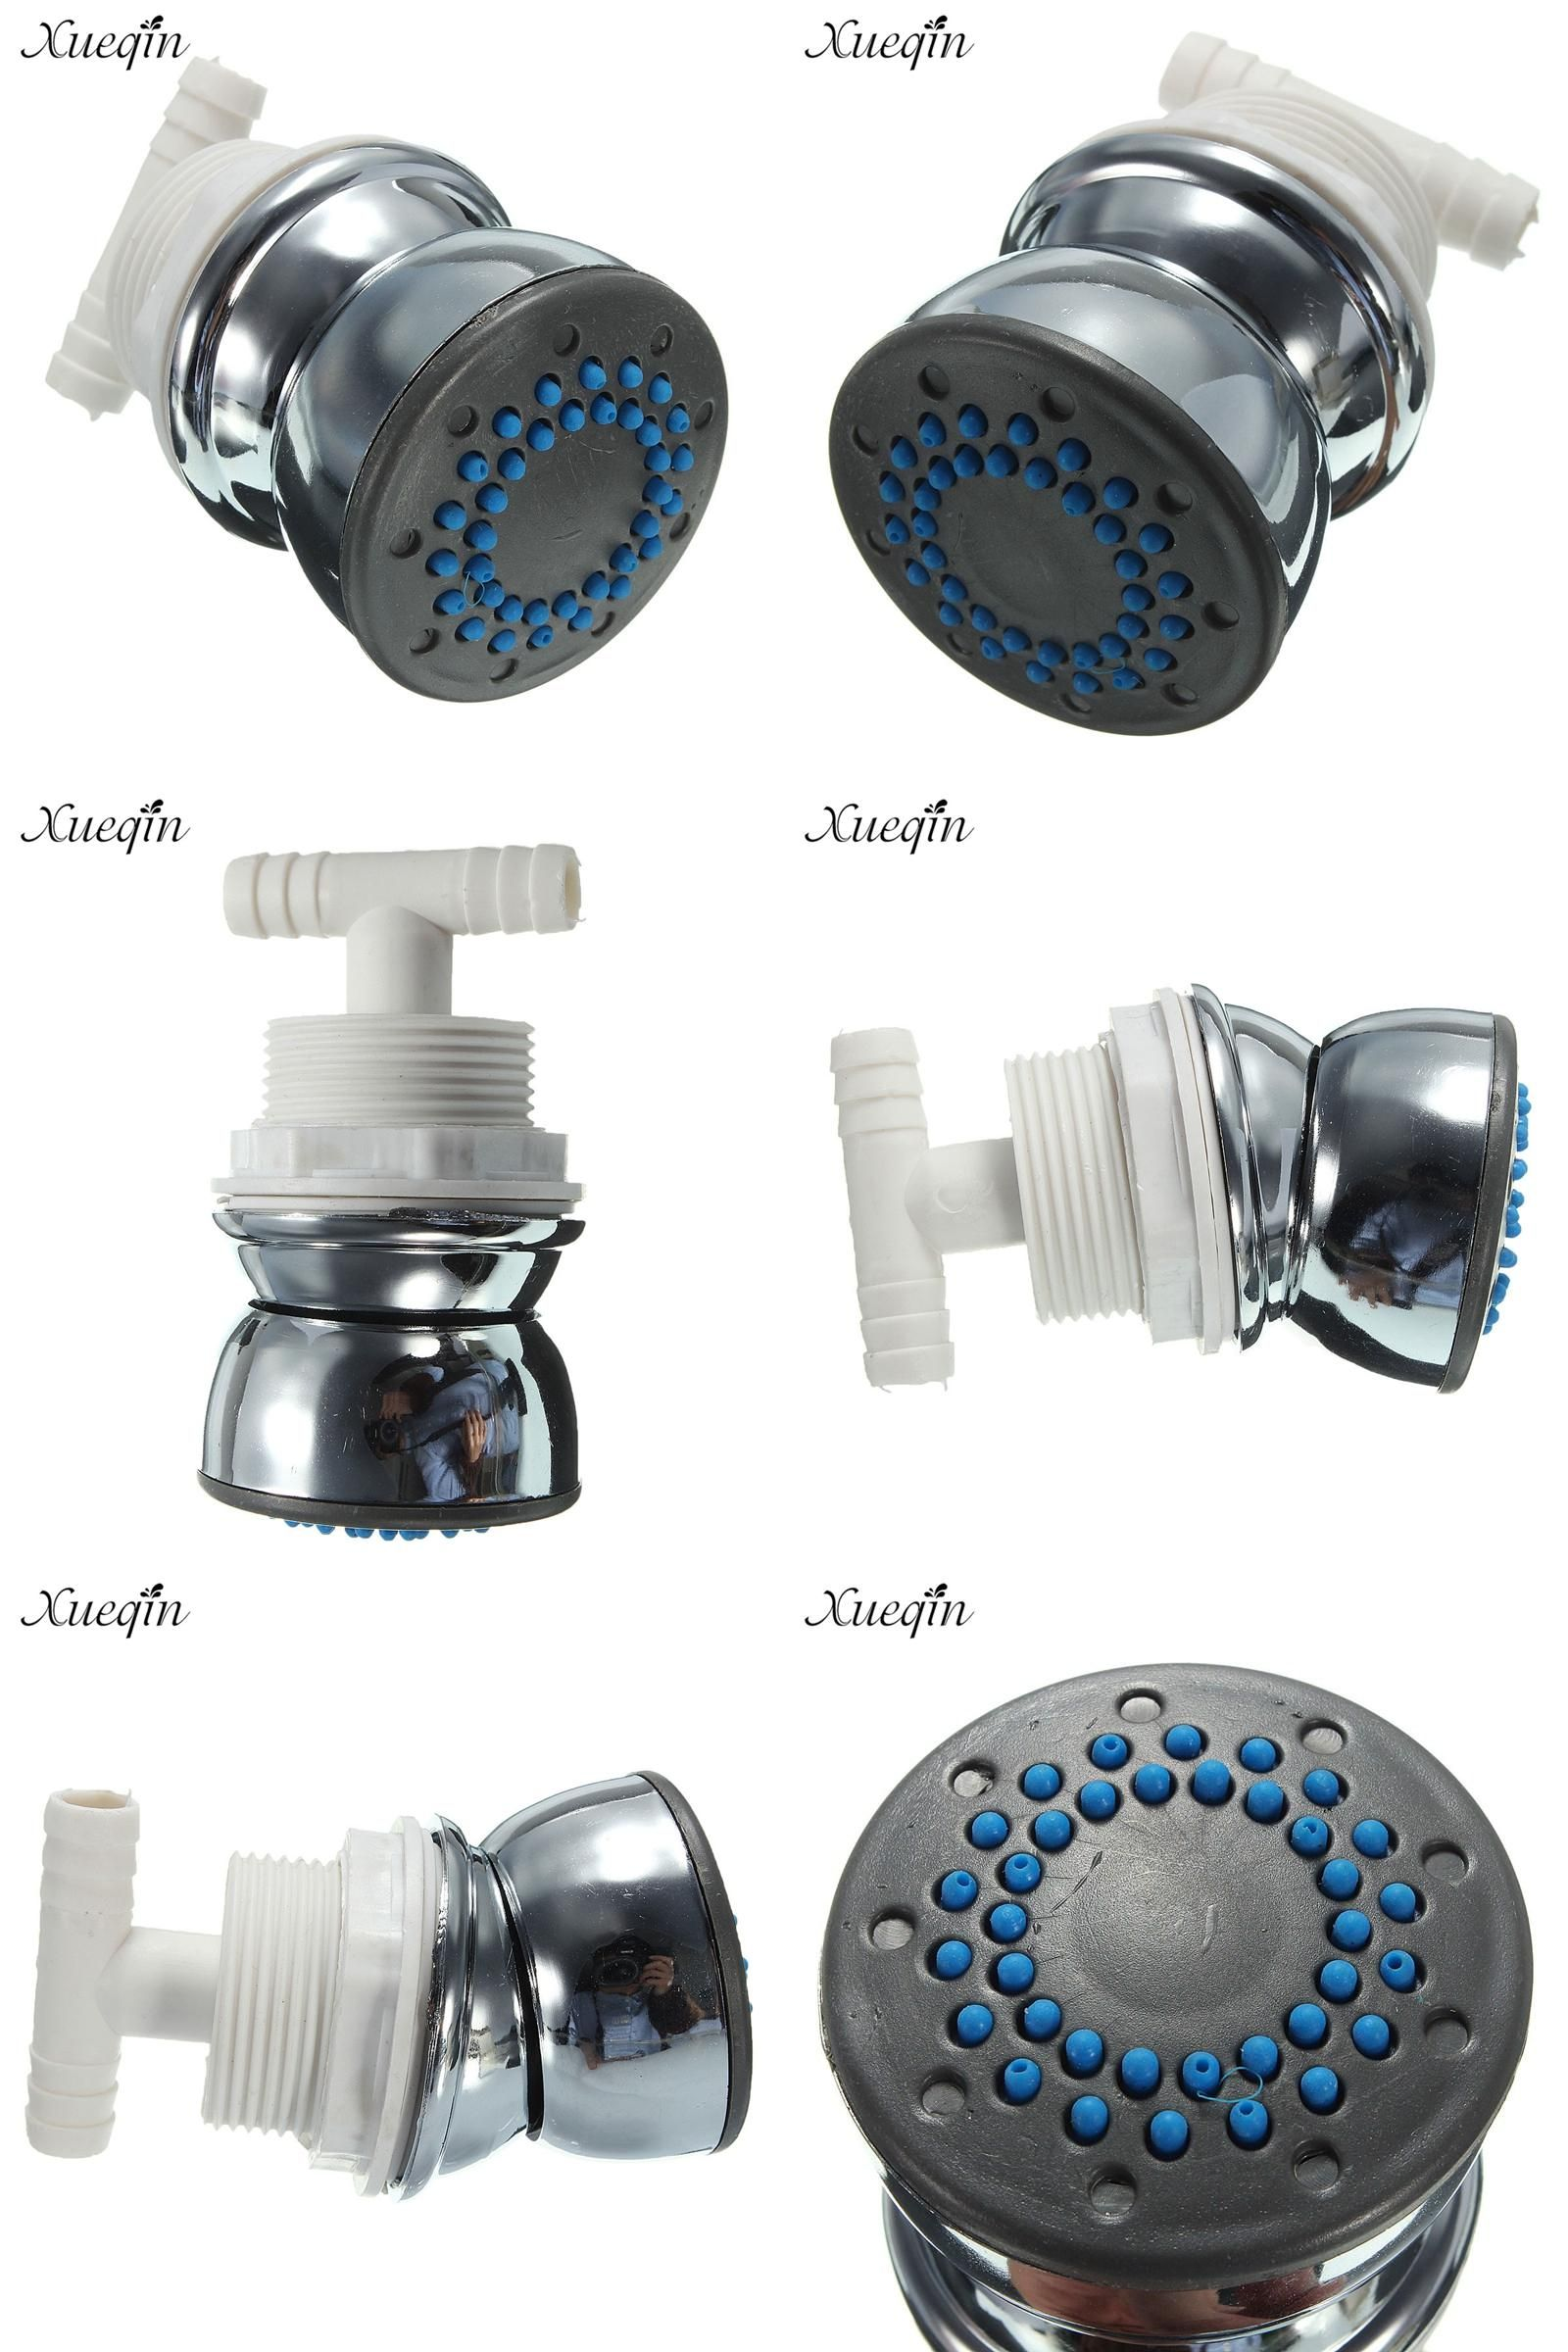 Visit to Buy] Xueqin Practical Bathroom Water Saving Shower Head ...